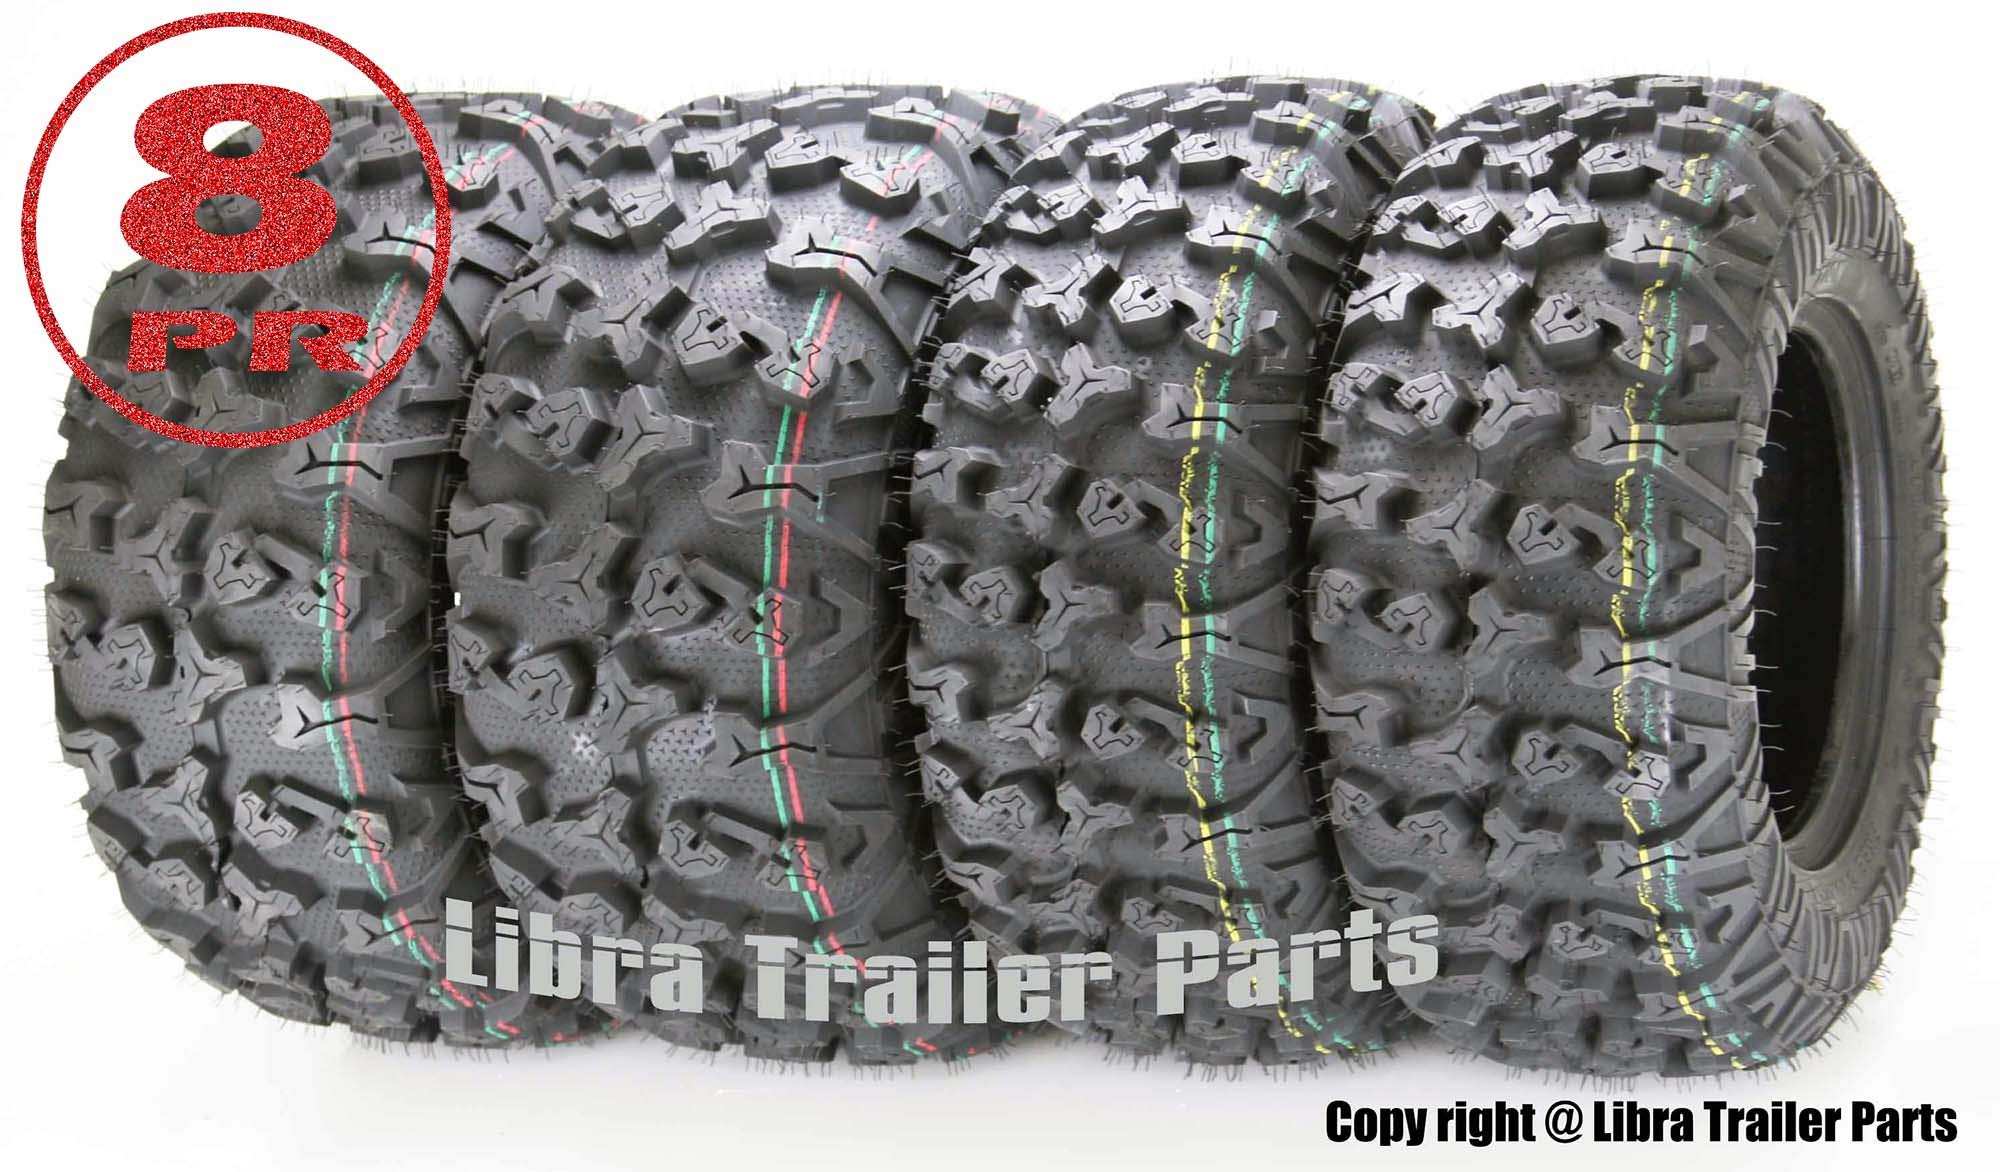 Set of 4 Premium FREE COUNTRY ATV/UTV Tires 25x8-12 Front & 25x10-12 Rear / 8PR w/Side Scuff Guard by Free Country